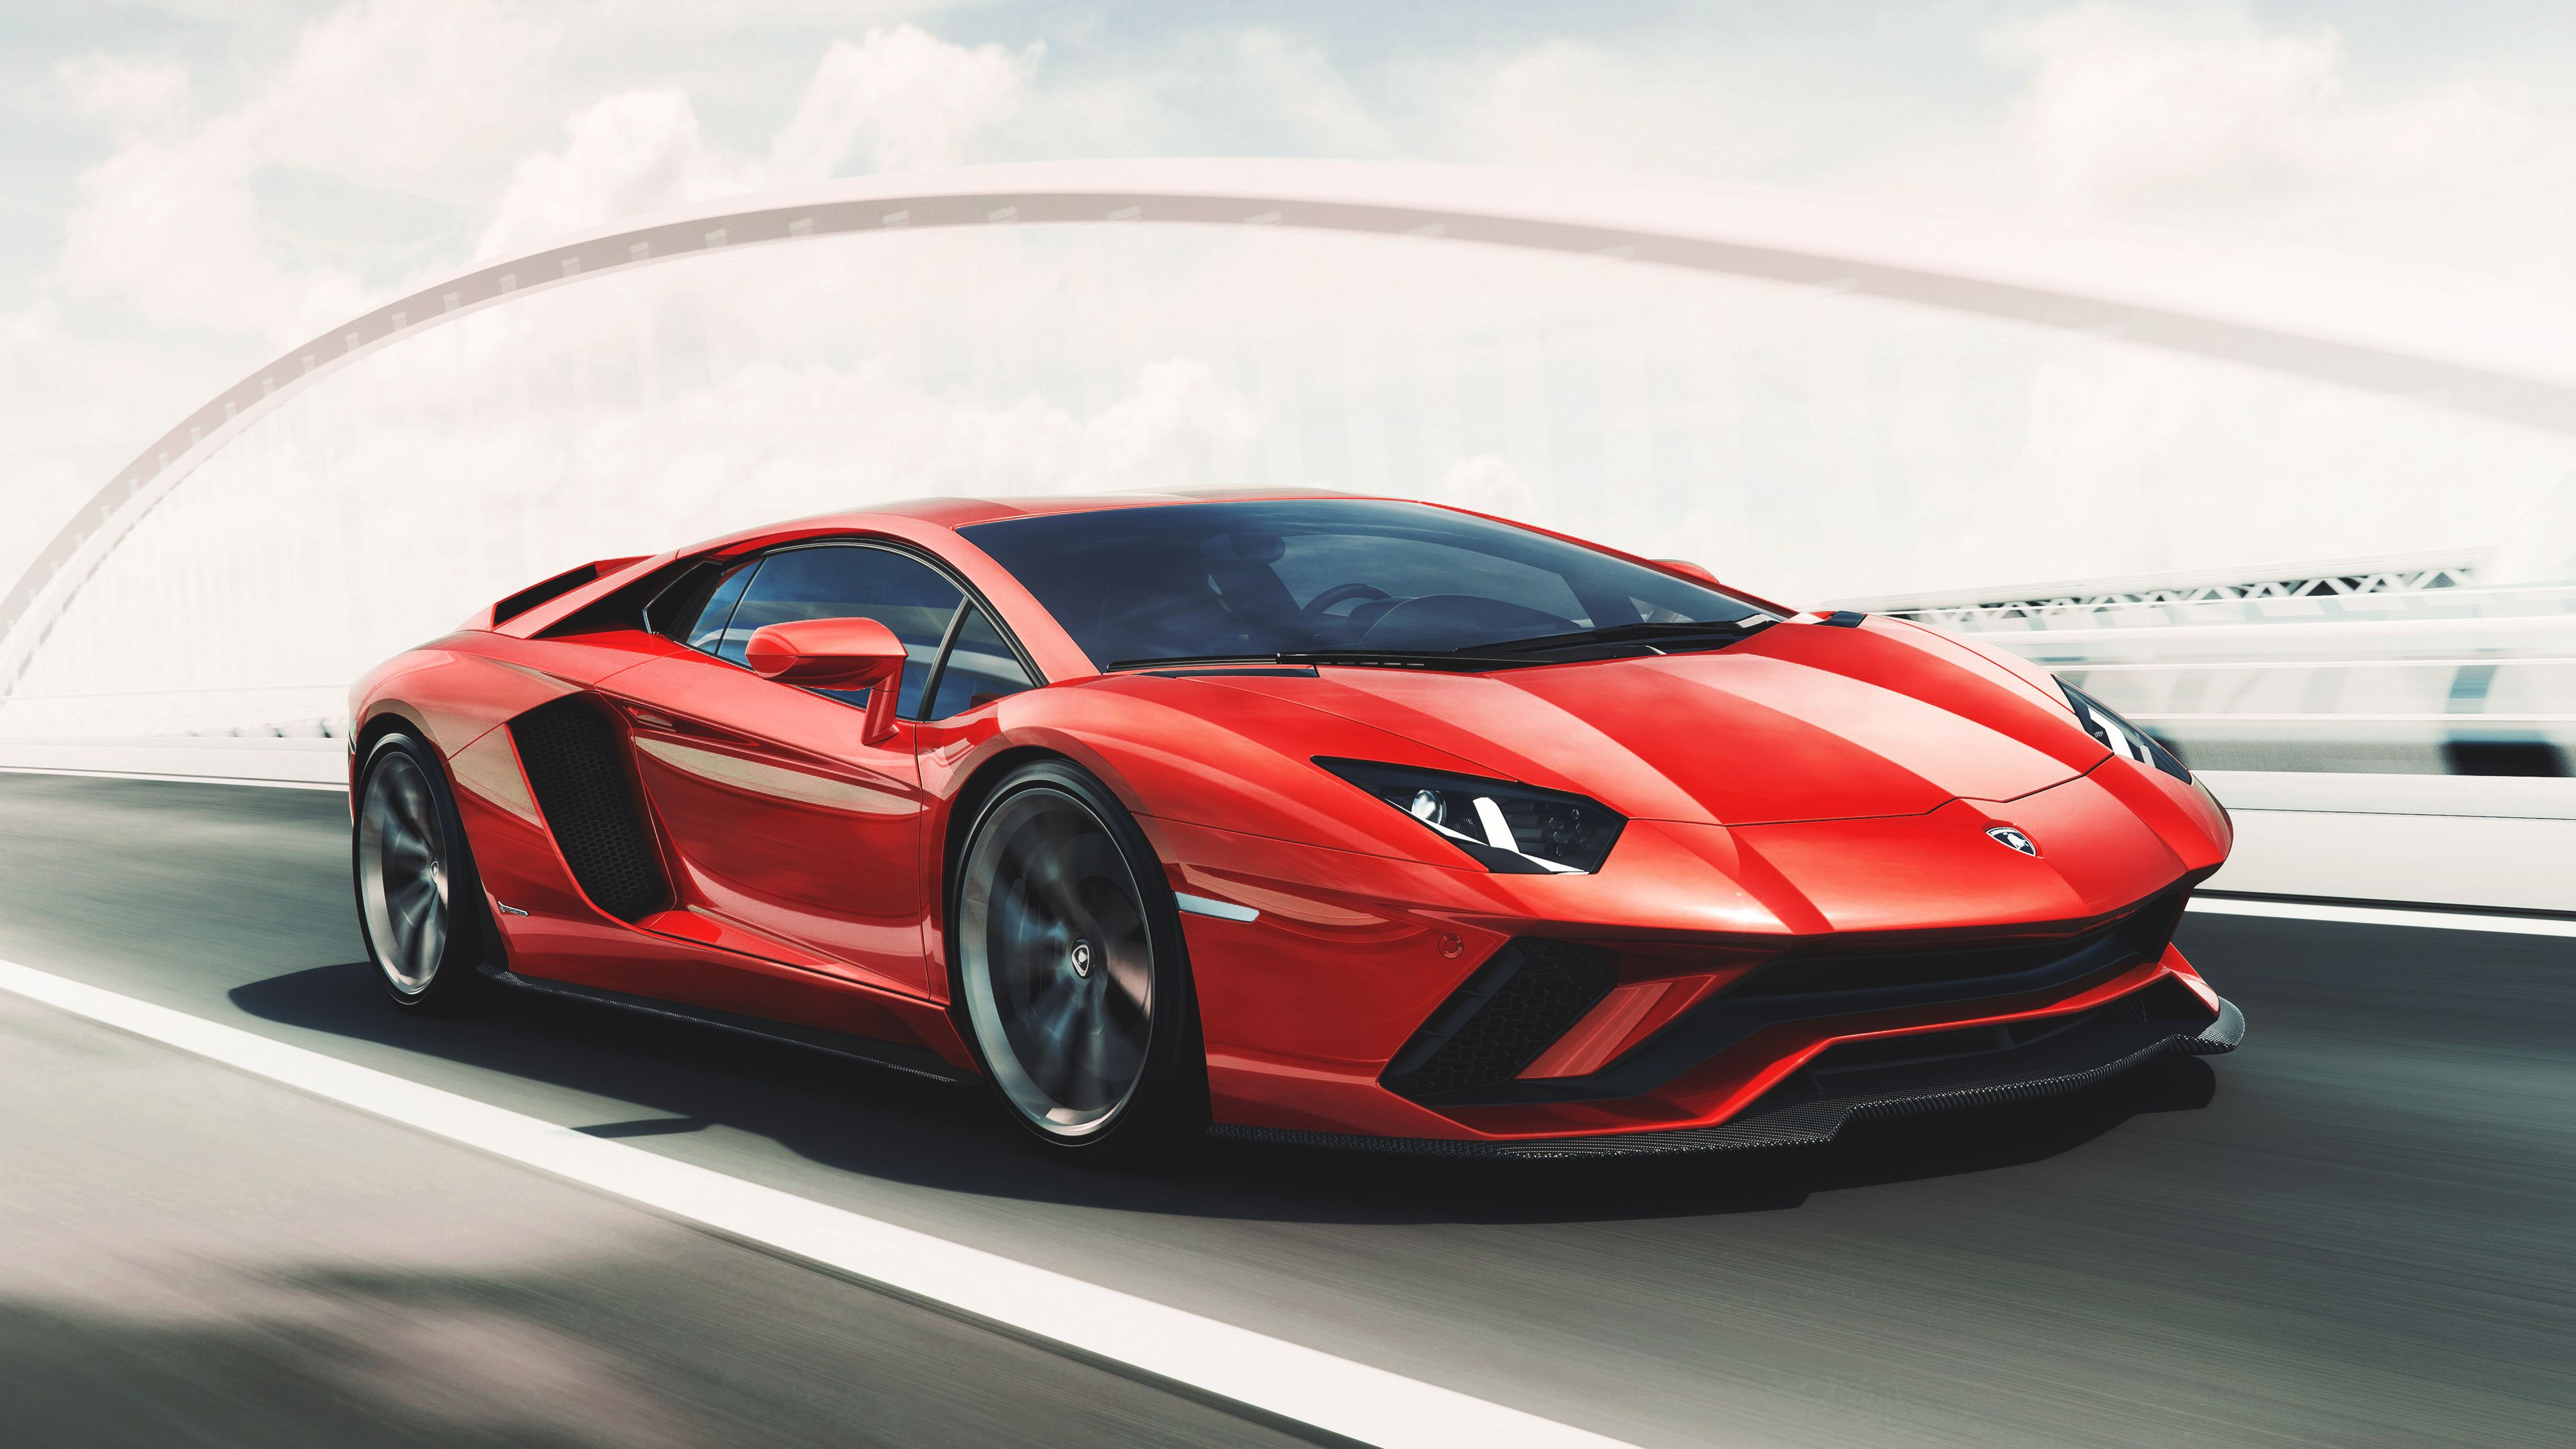 Wallpaper 4k Red Lamborghini Aventador 4k Wallpapers Cars Wallpapers Hd Wallpapers Lamborghini Aventador Wallpapers Lamborghini Wallpapers Red Wallpapers Lamborghini Aventador Spor Arabalar Lamborghini